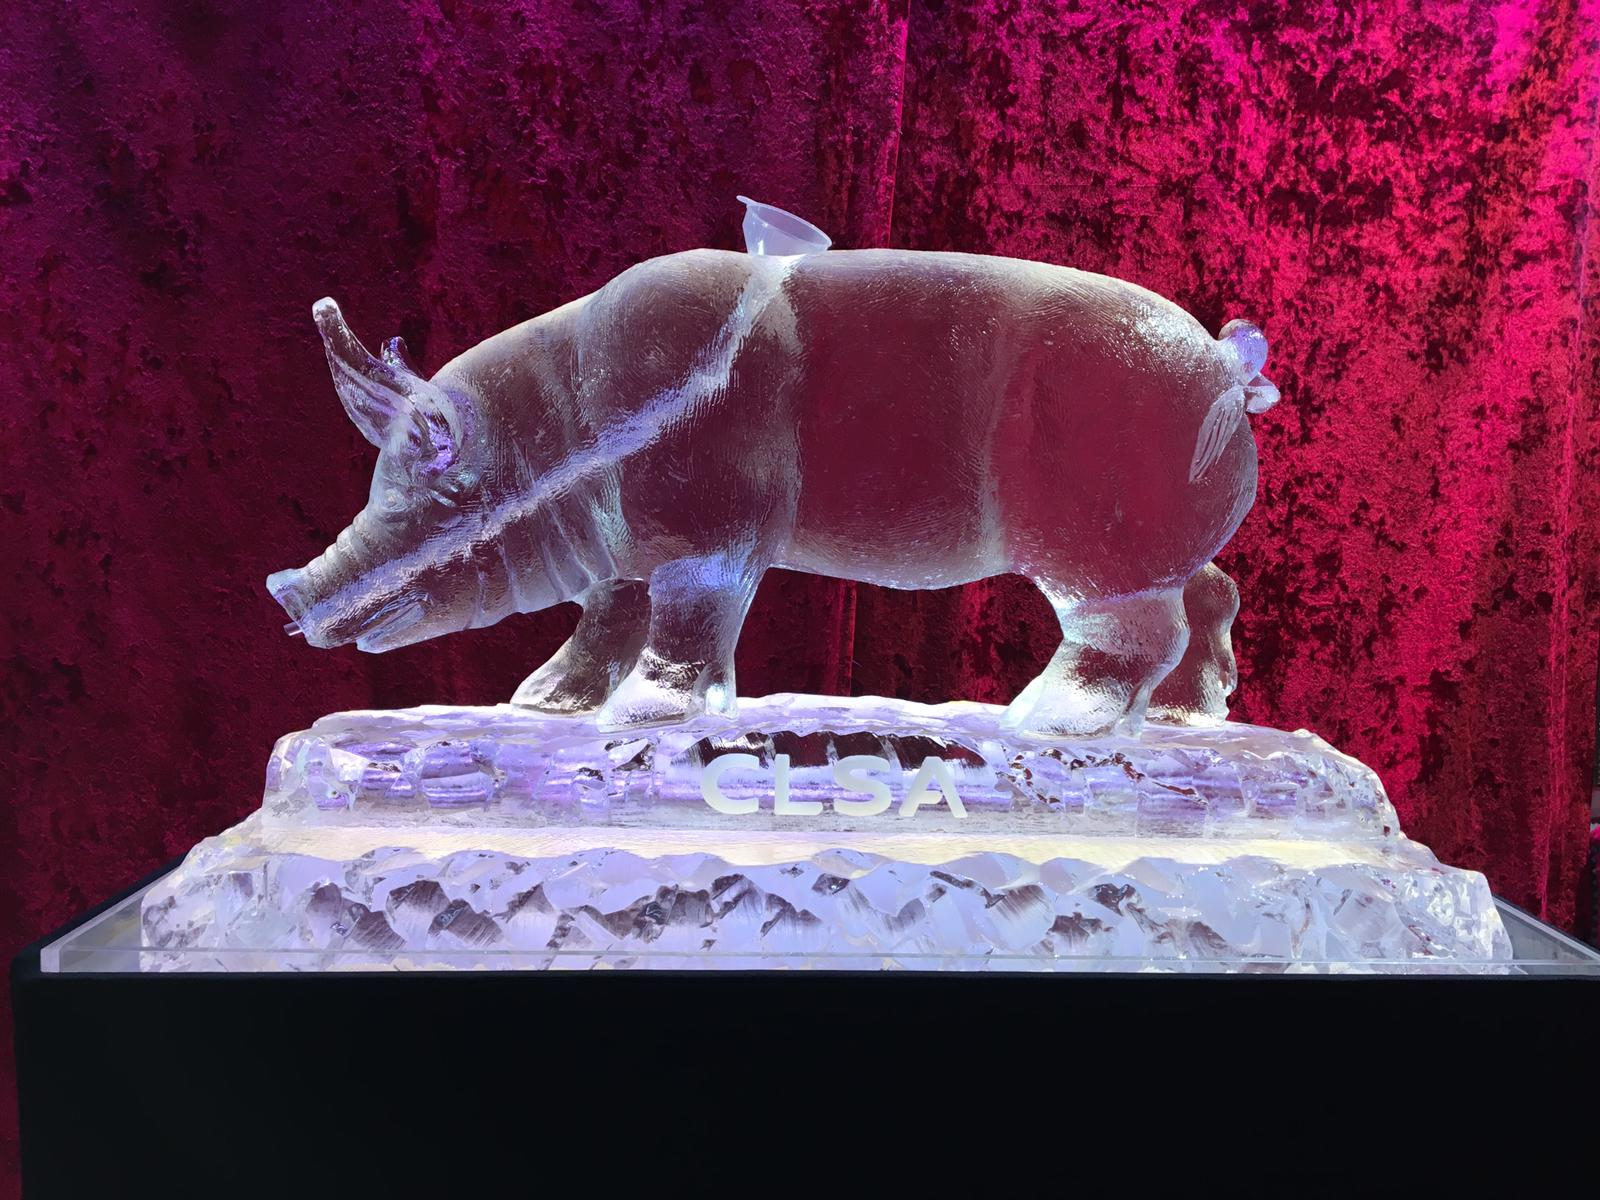 Year of the Pig Ice Sculpture